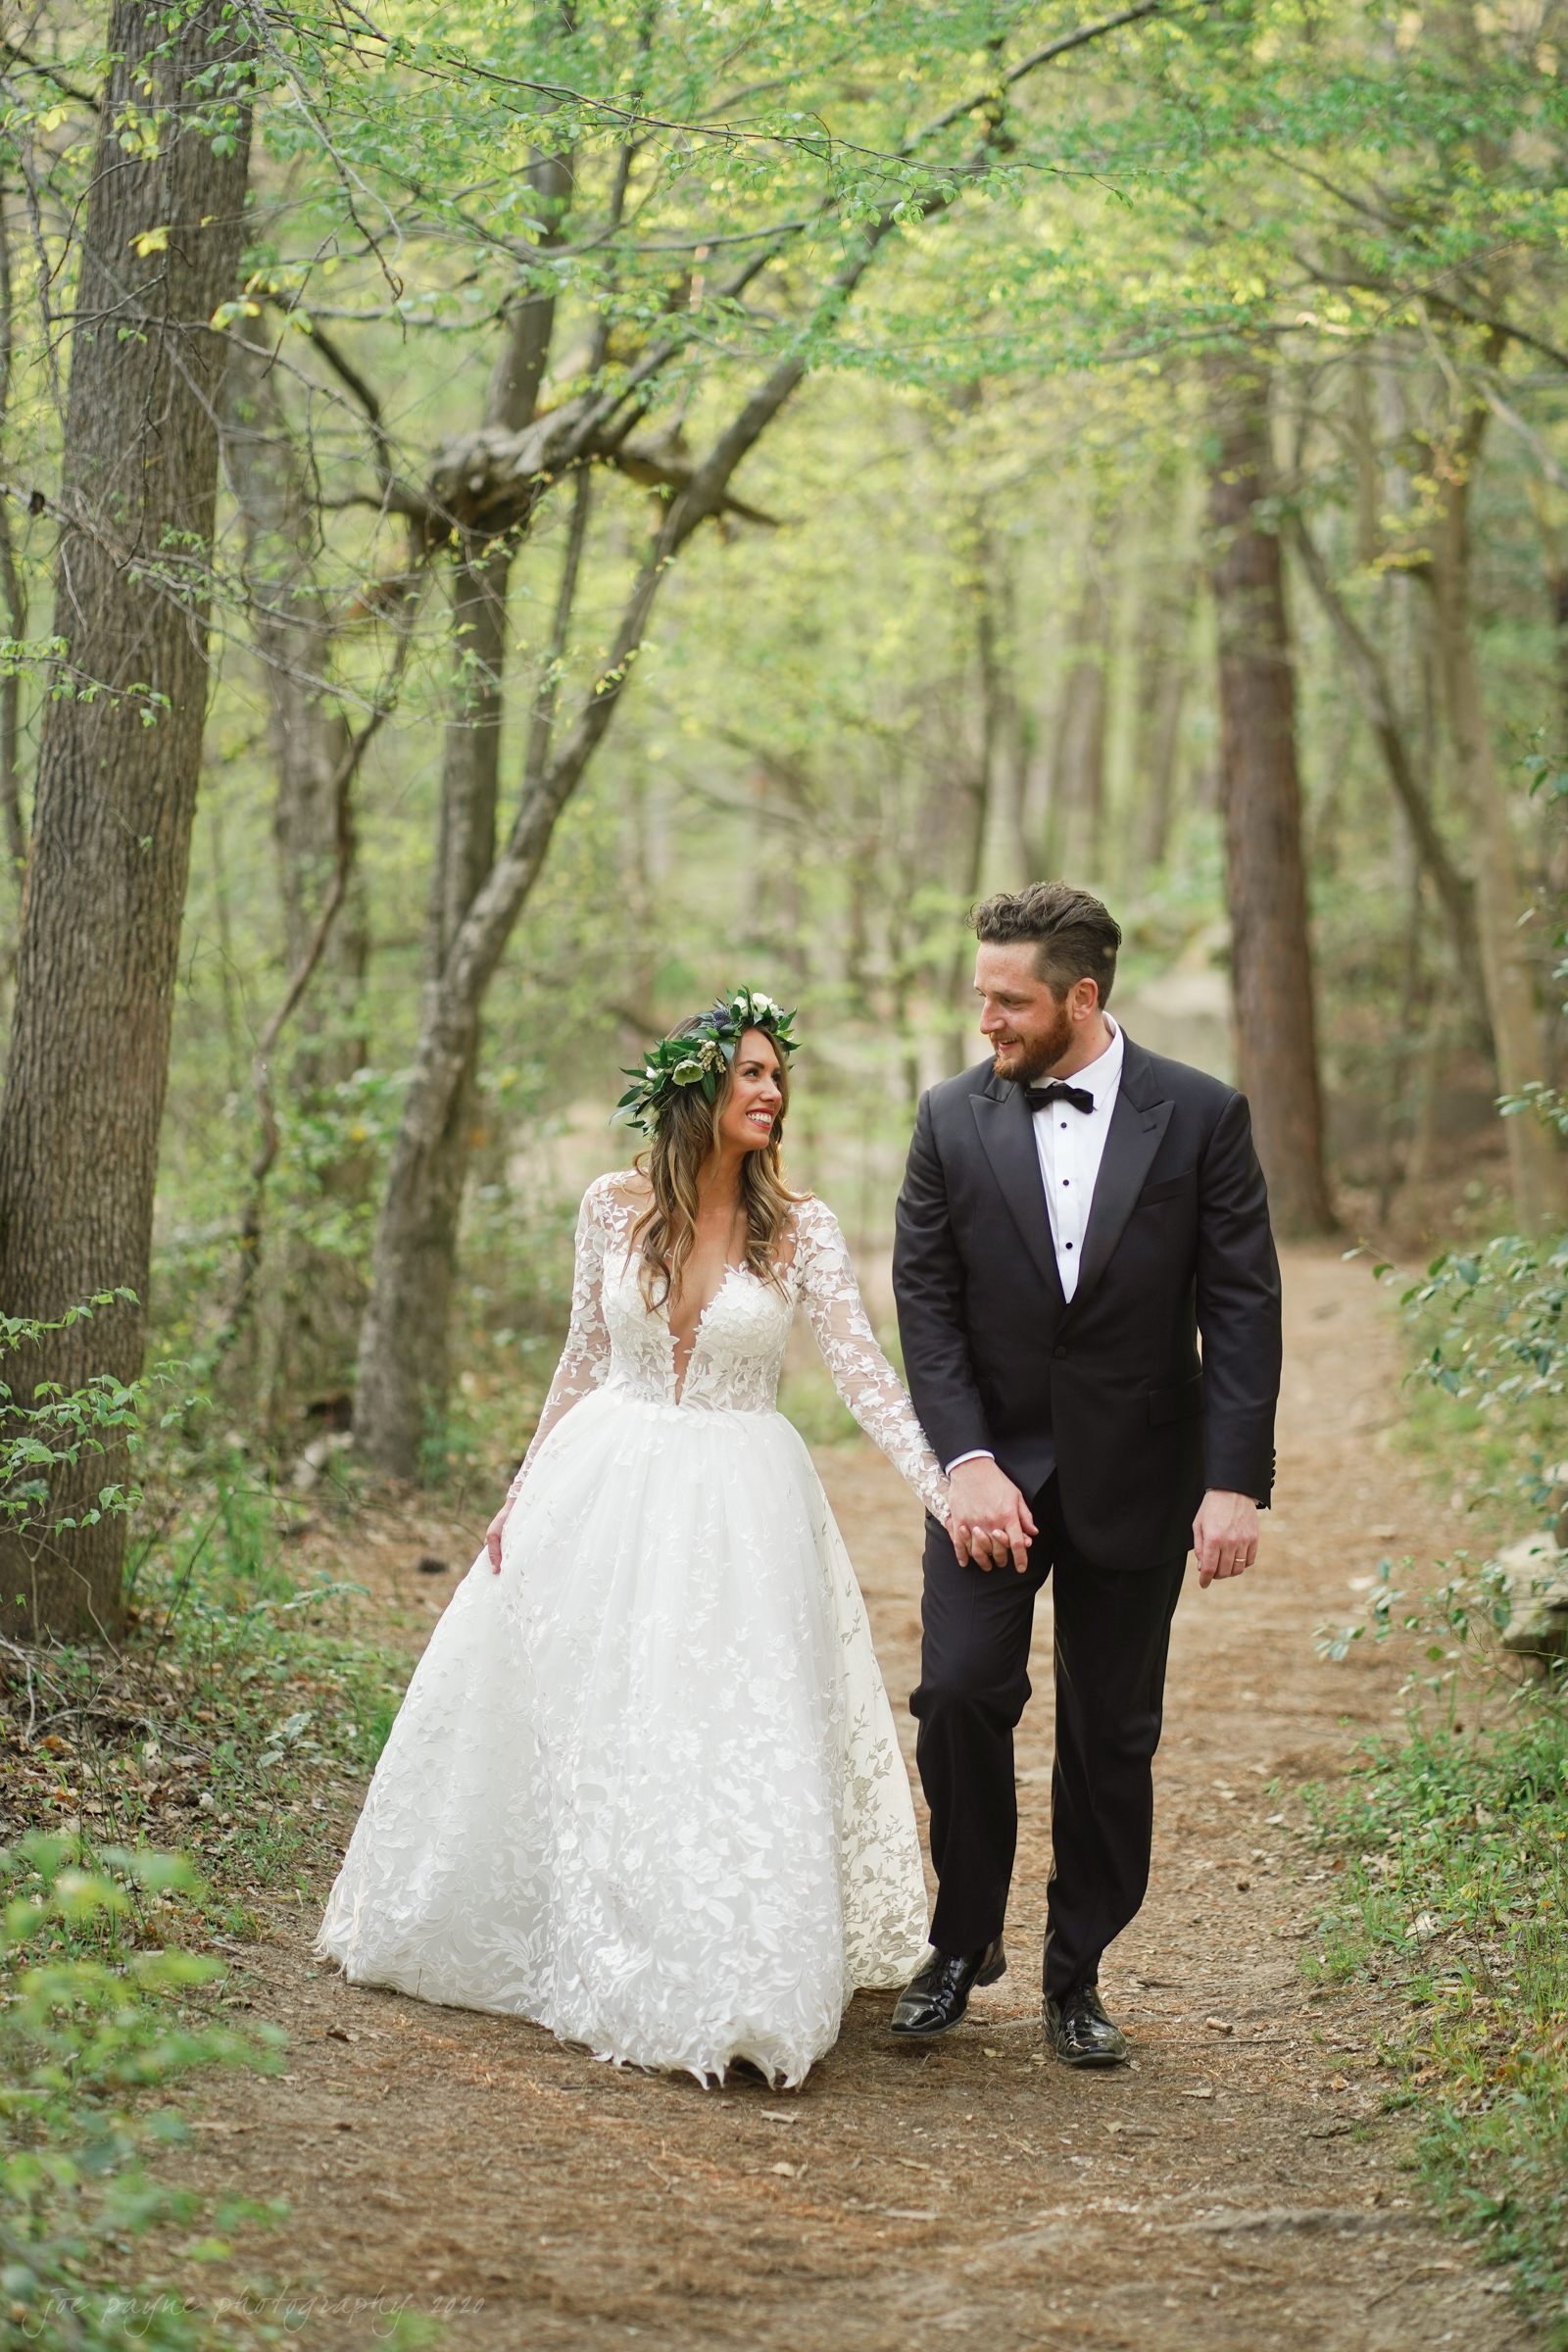 umstead hotel park wedding photography brittany harrison 38